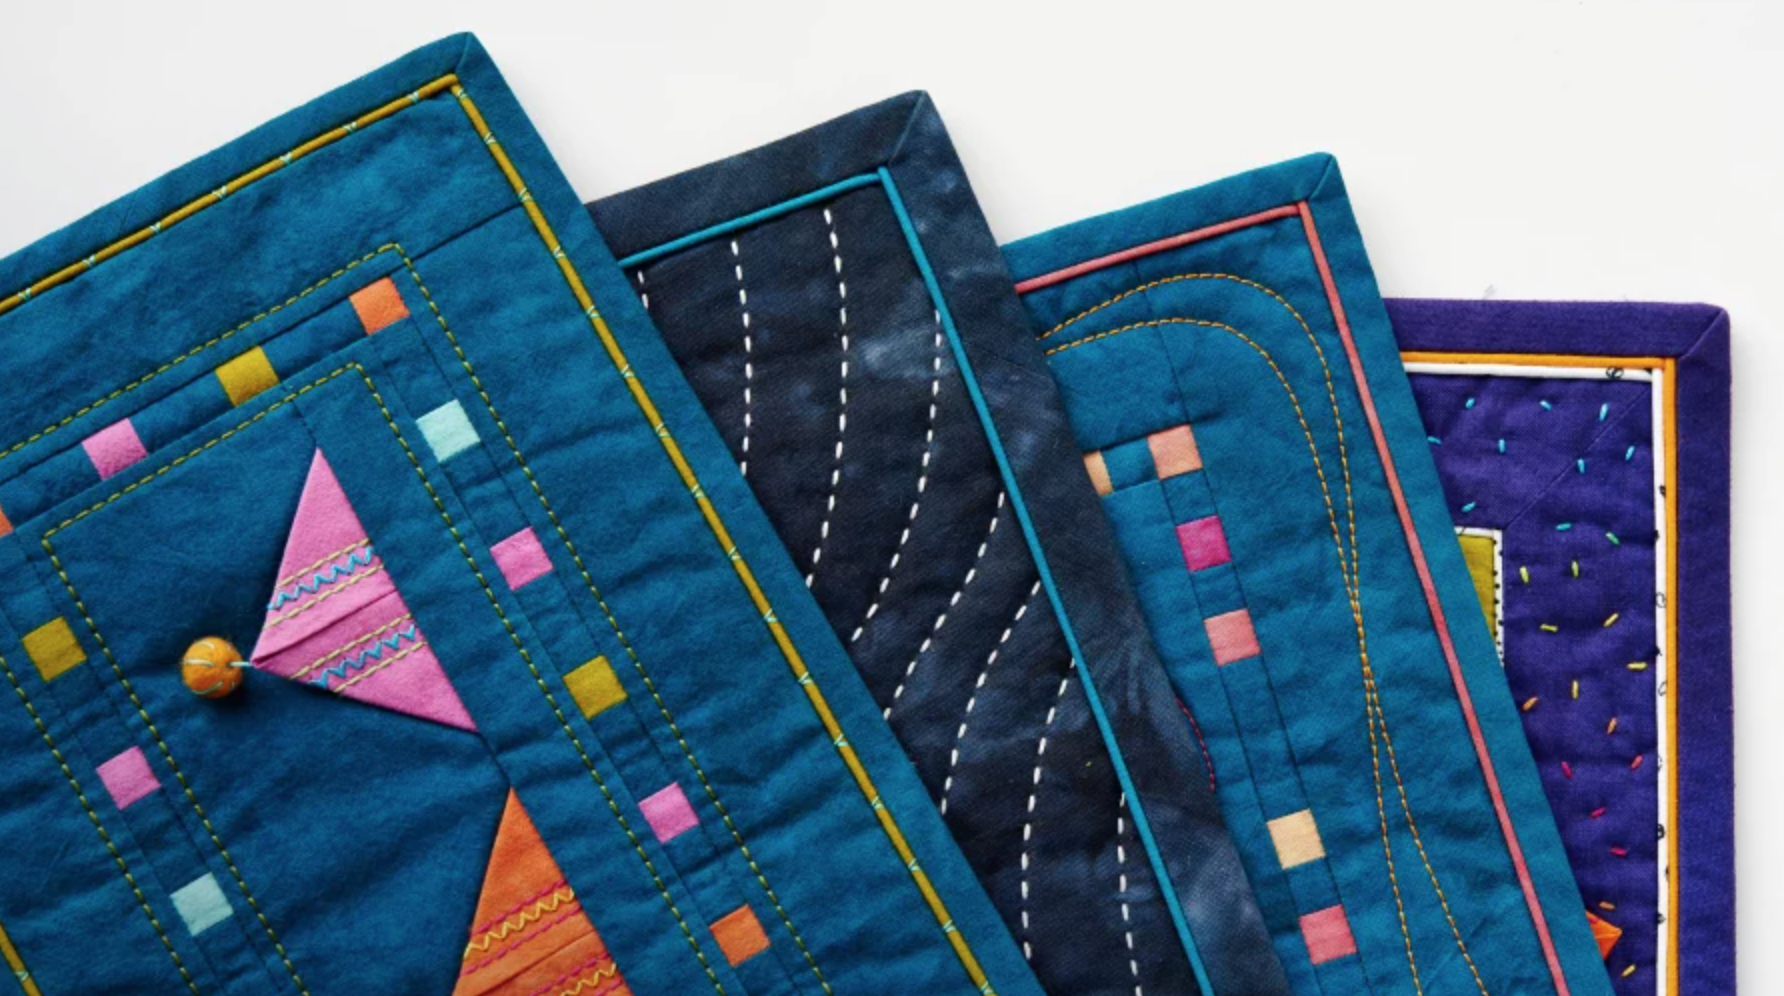 bound blue quilts fanned out